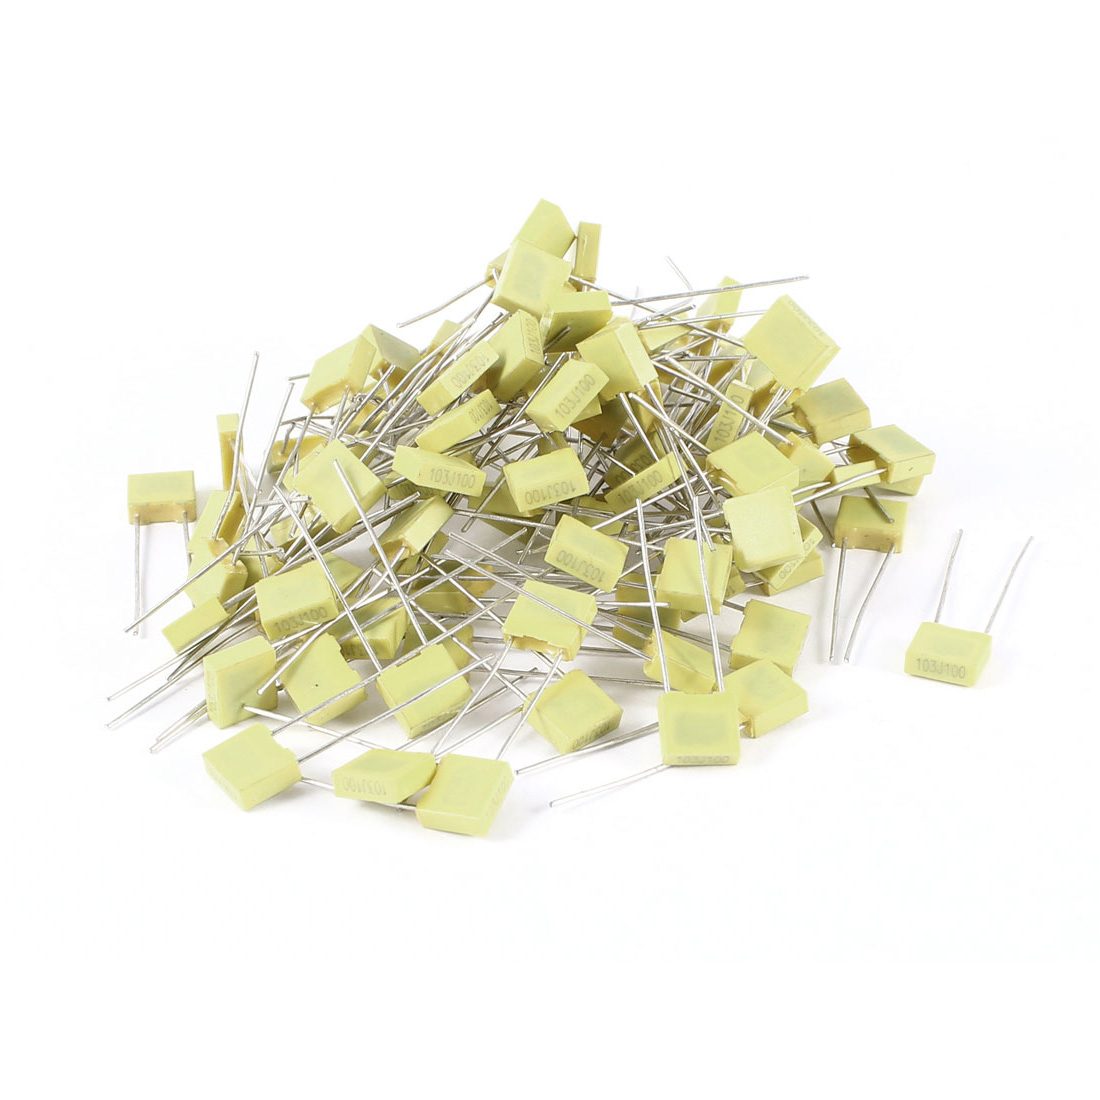 100 Pcs 100V 0.01uF 10NF Radial Lead Box Type Film Correction Capacitors Yellow